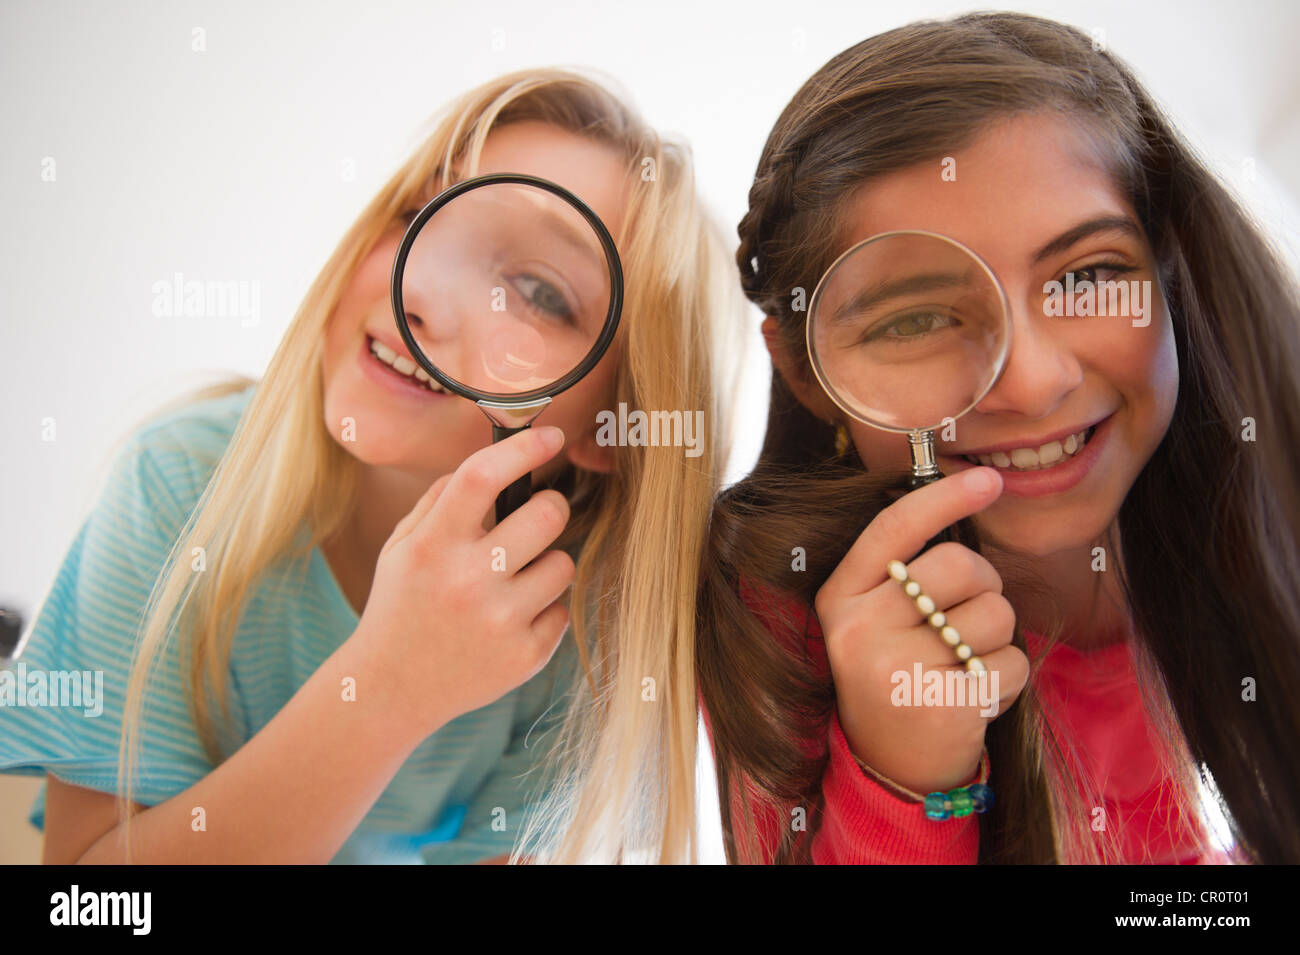 USA, New Jersey, Jersey City,  Two girls looking through magnifying glasses Stock Photo